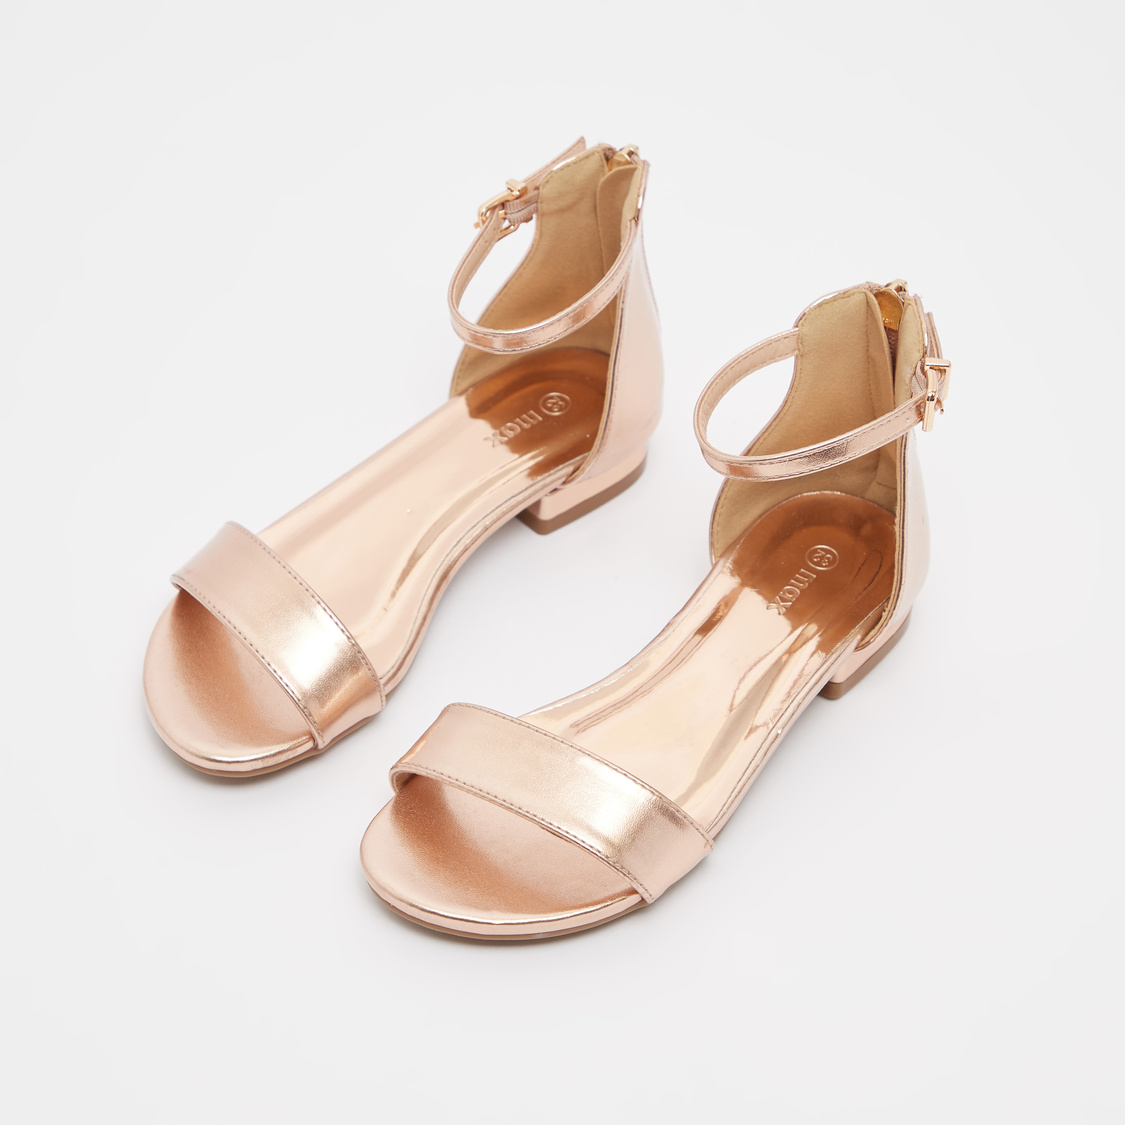 Glossy Ankle Strap Sandals with Zip Closure